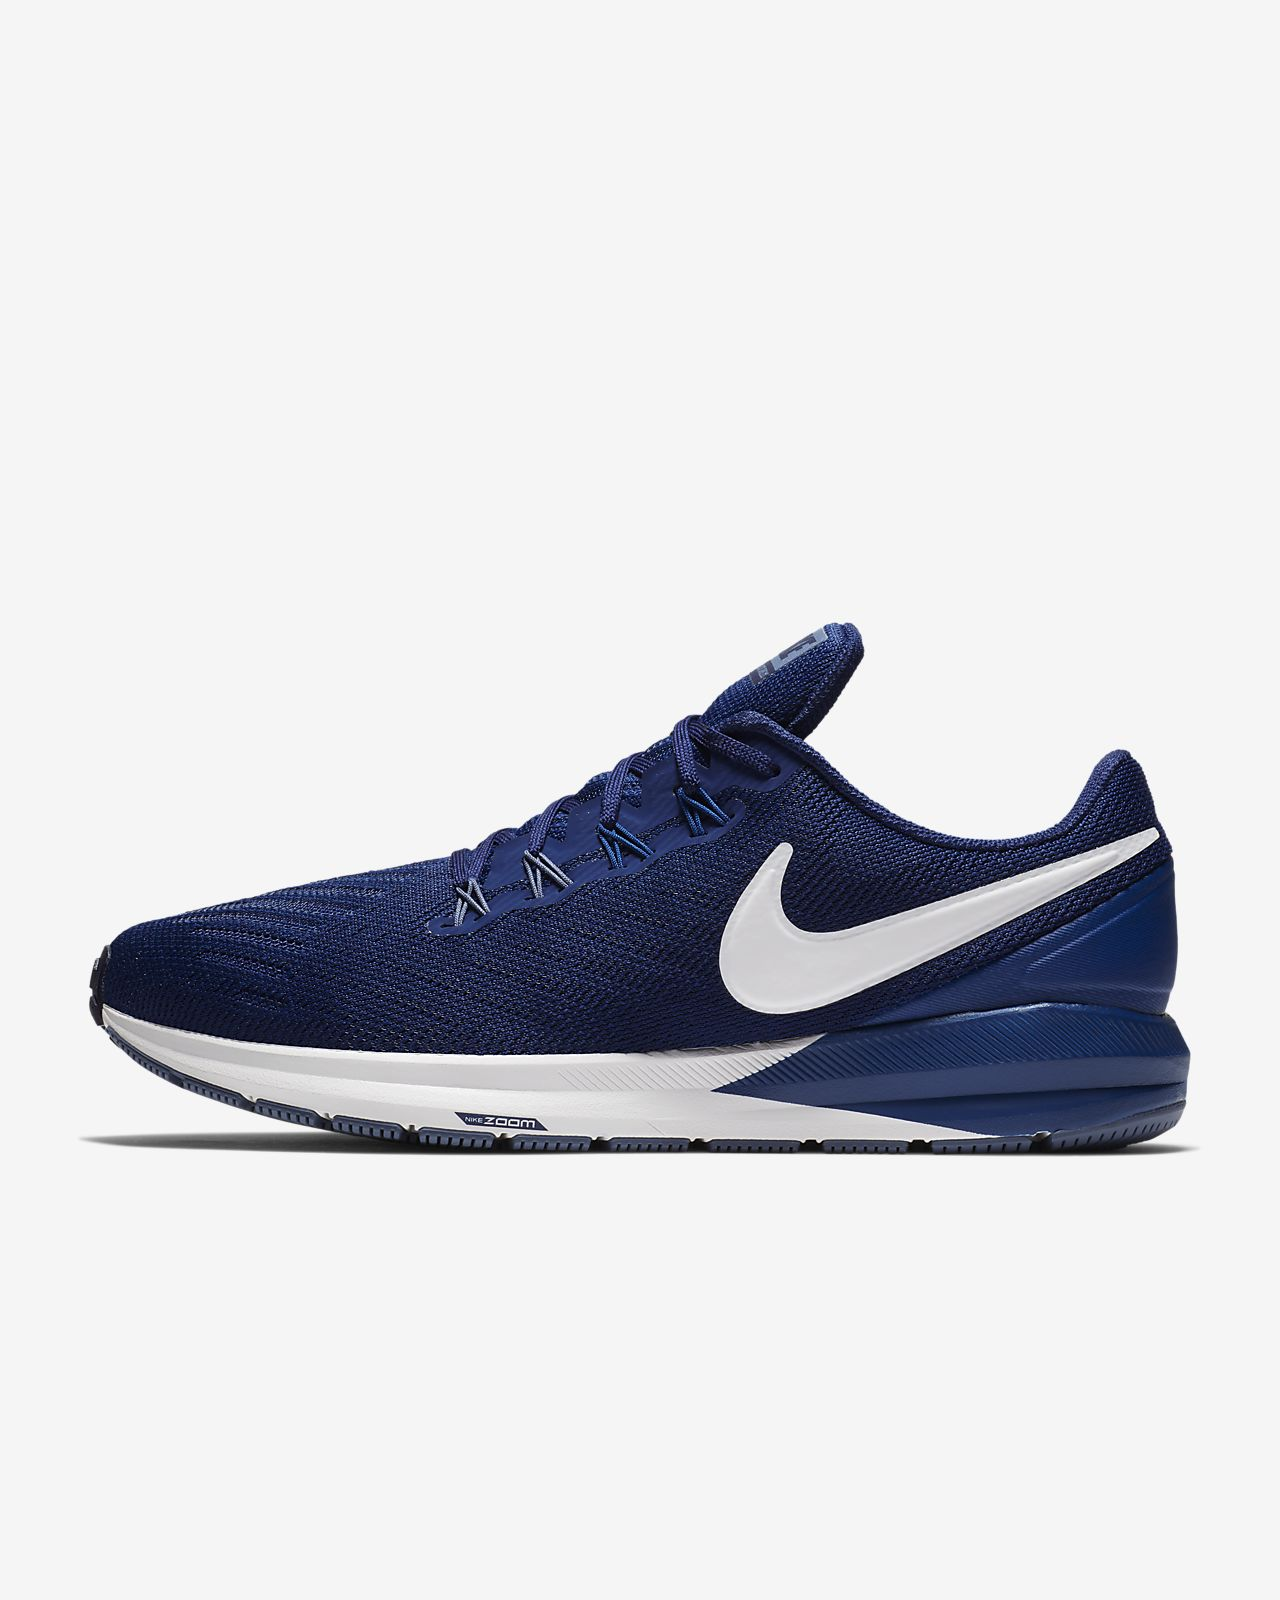 hot sale online d66a2 0a9f8 Nike Air Zoom Structure 22 Men's Running Shoe